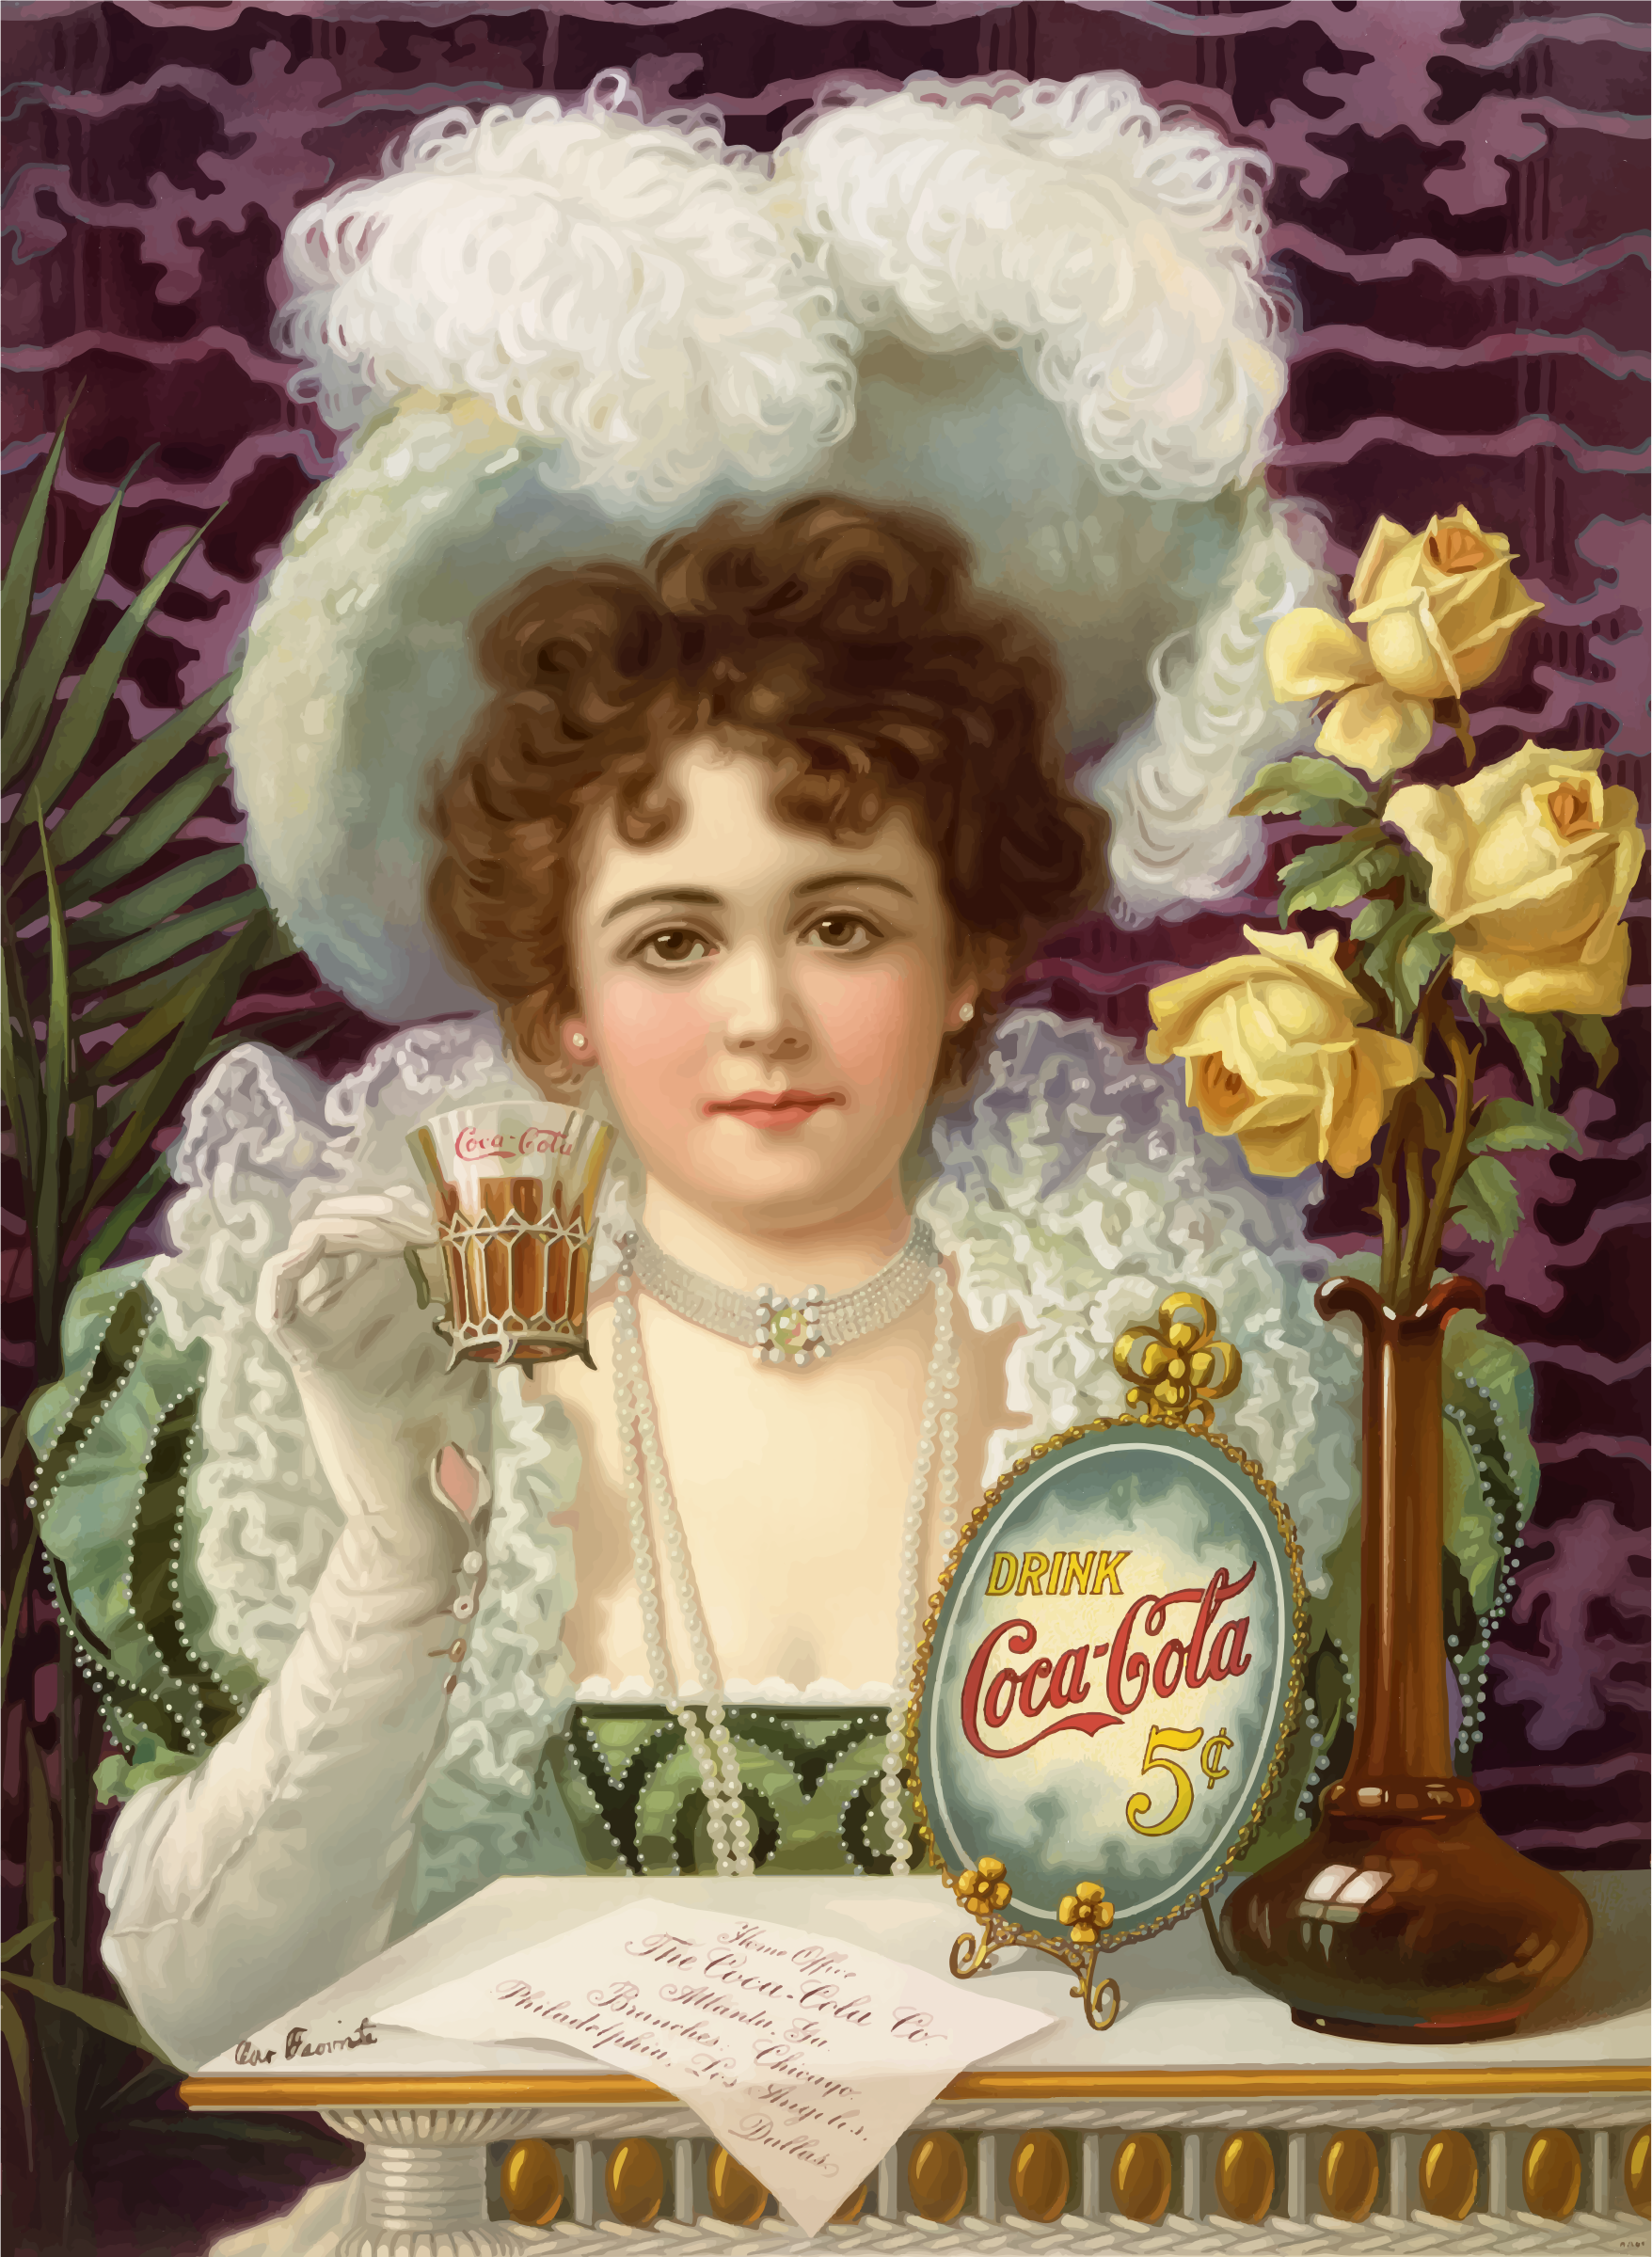 Coca Cola 5 Cents 1900 by GDJ